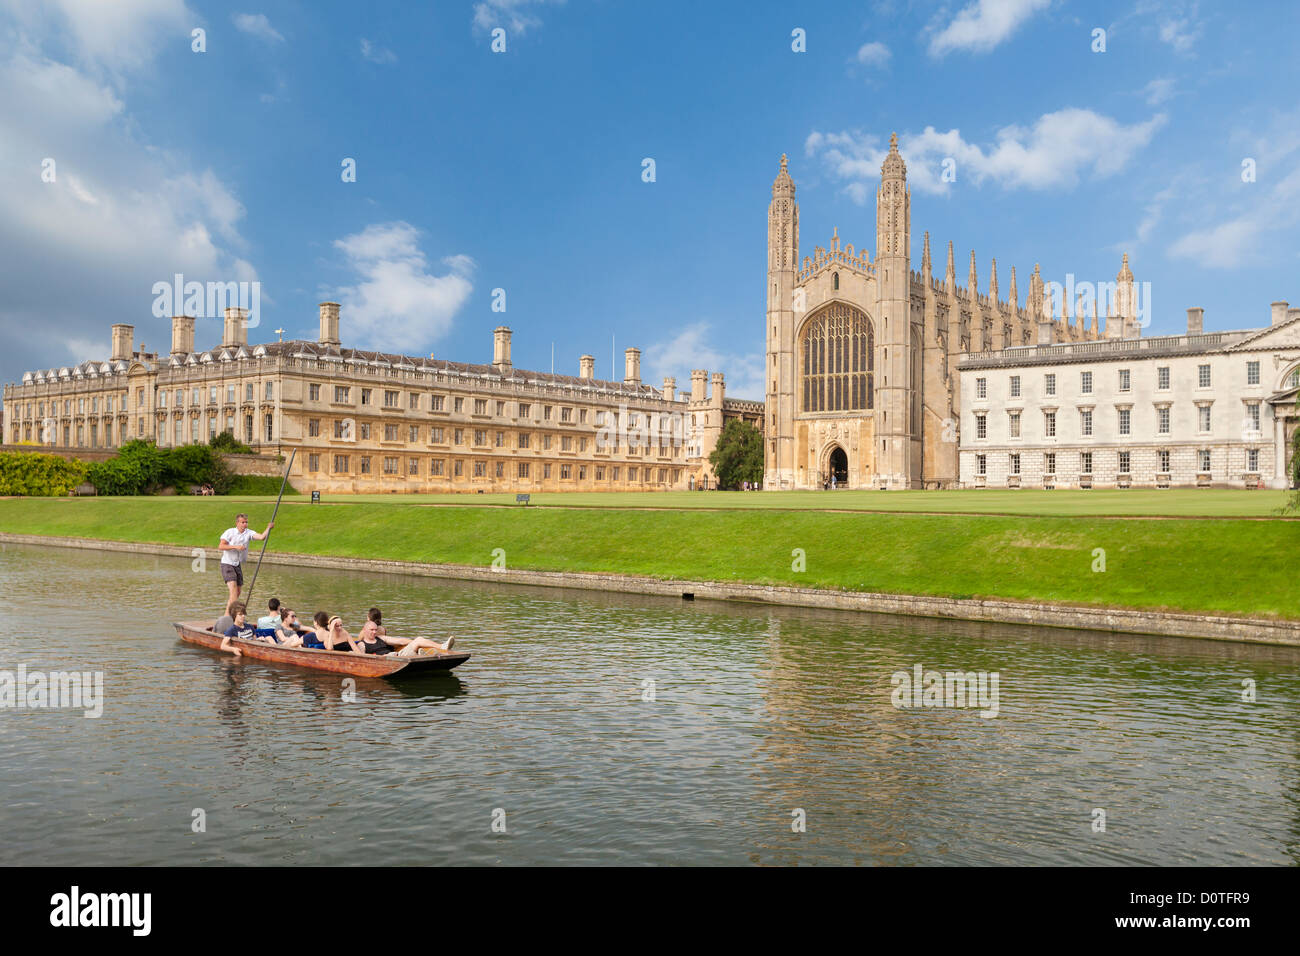 Punts on the river Cam at King's college in Cambridge, England - Stock Image